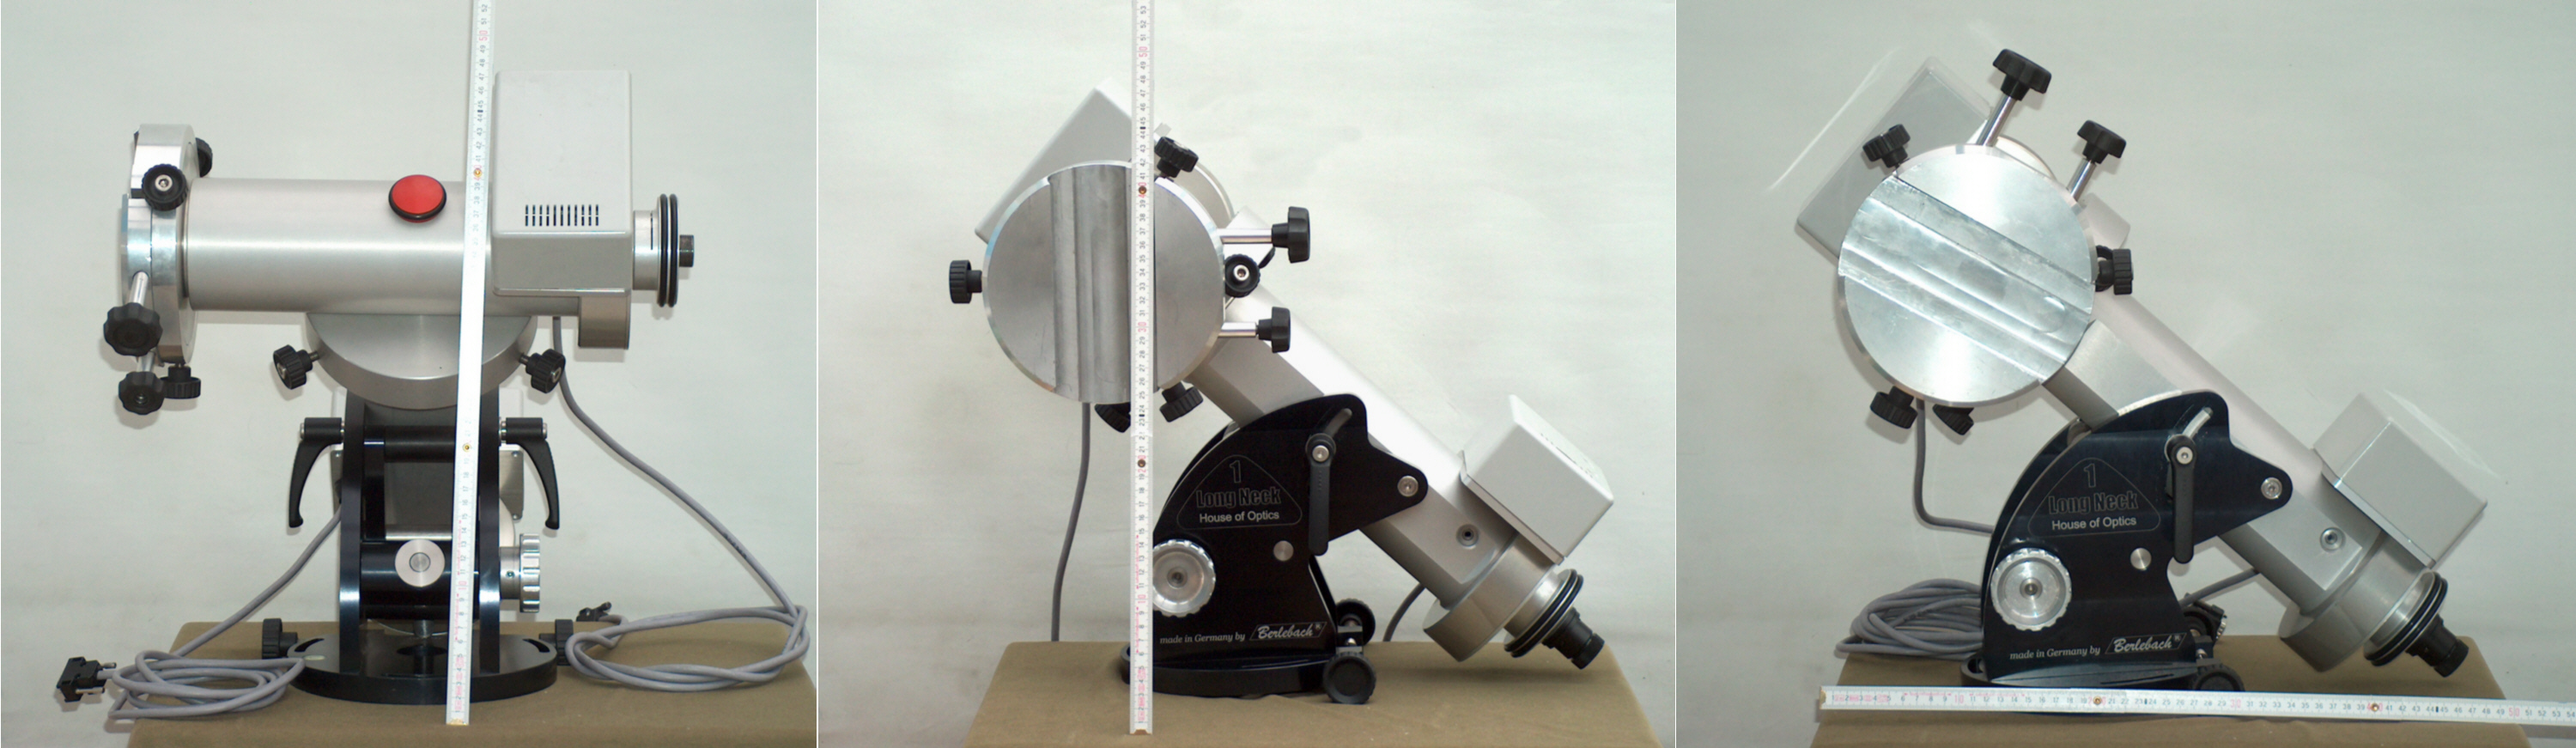 Web-Shop House of Optics Germany - Ecuatorial Mount HoOLN1